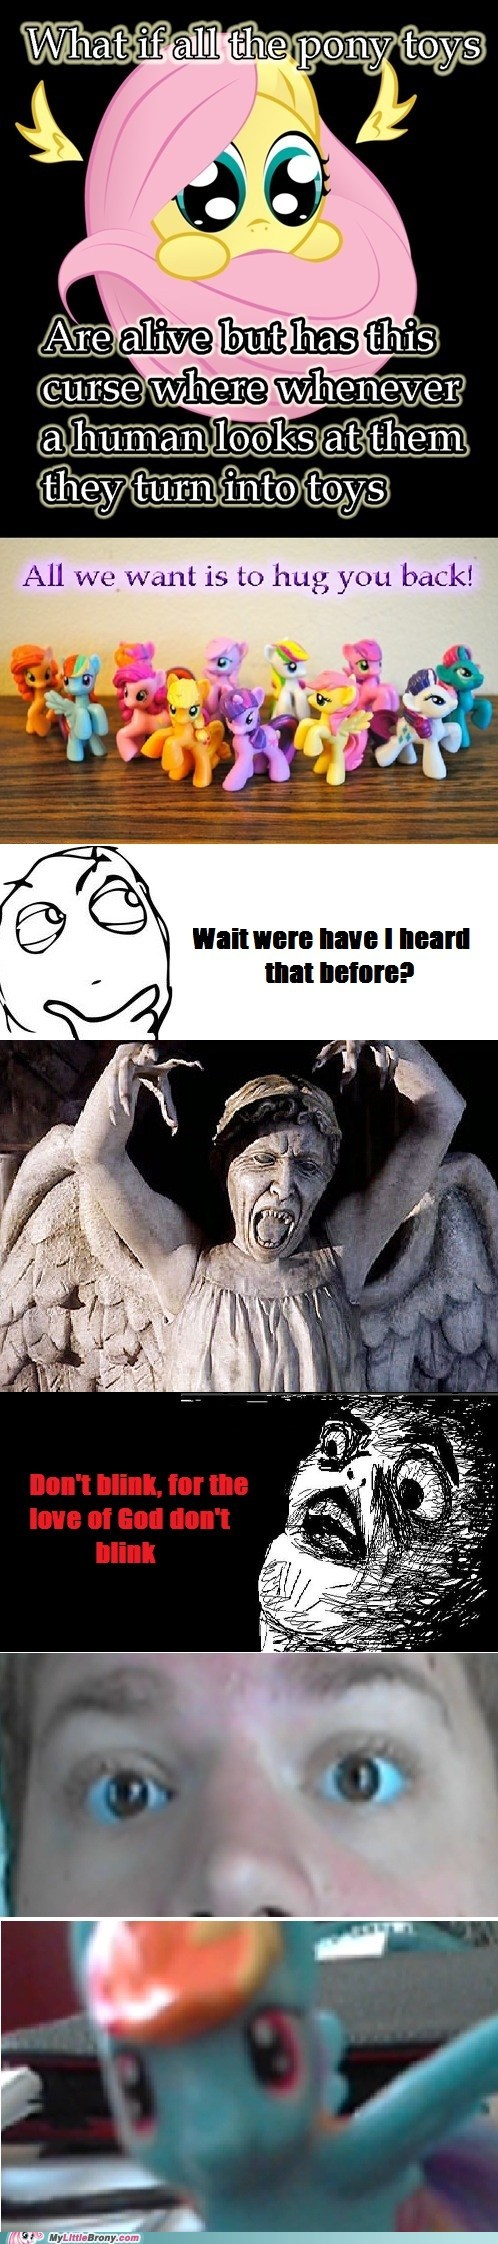 Weeping Angels In Pony Form?